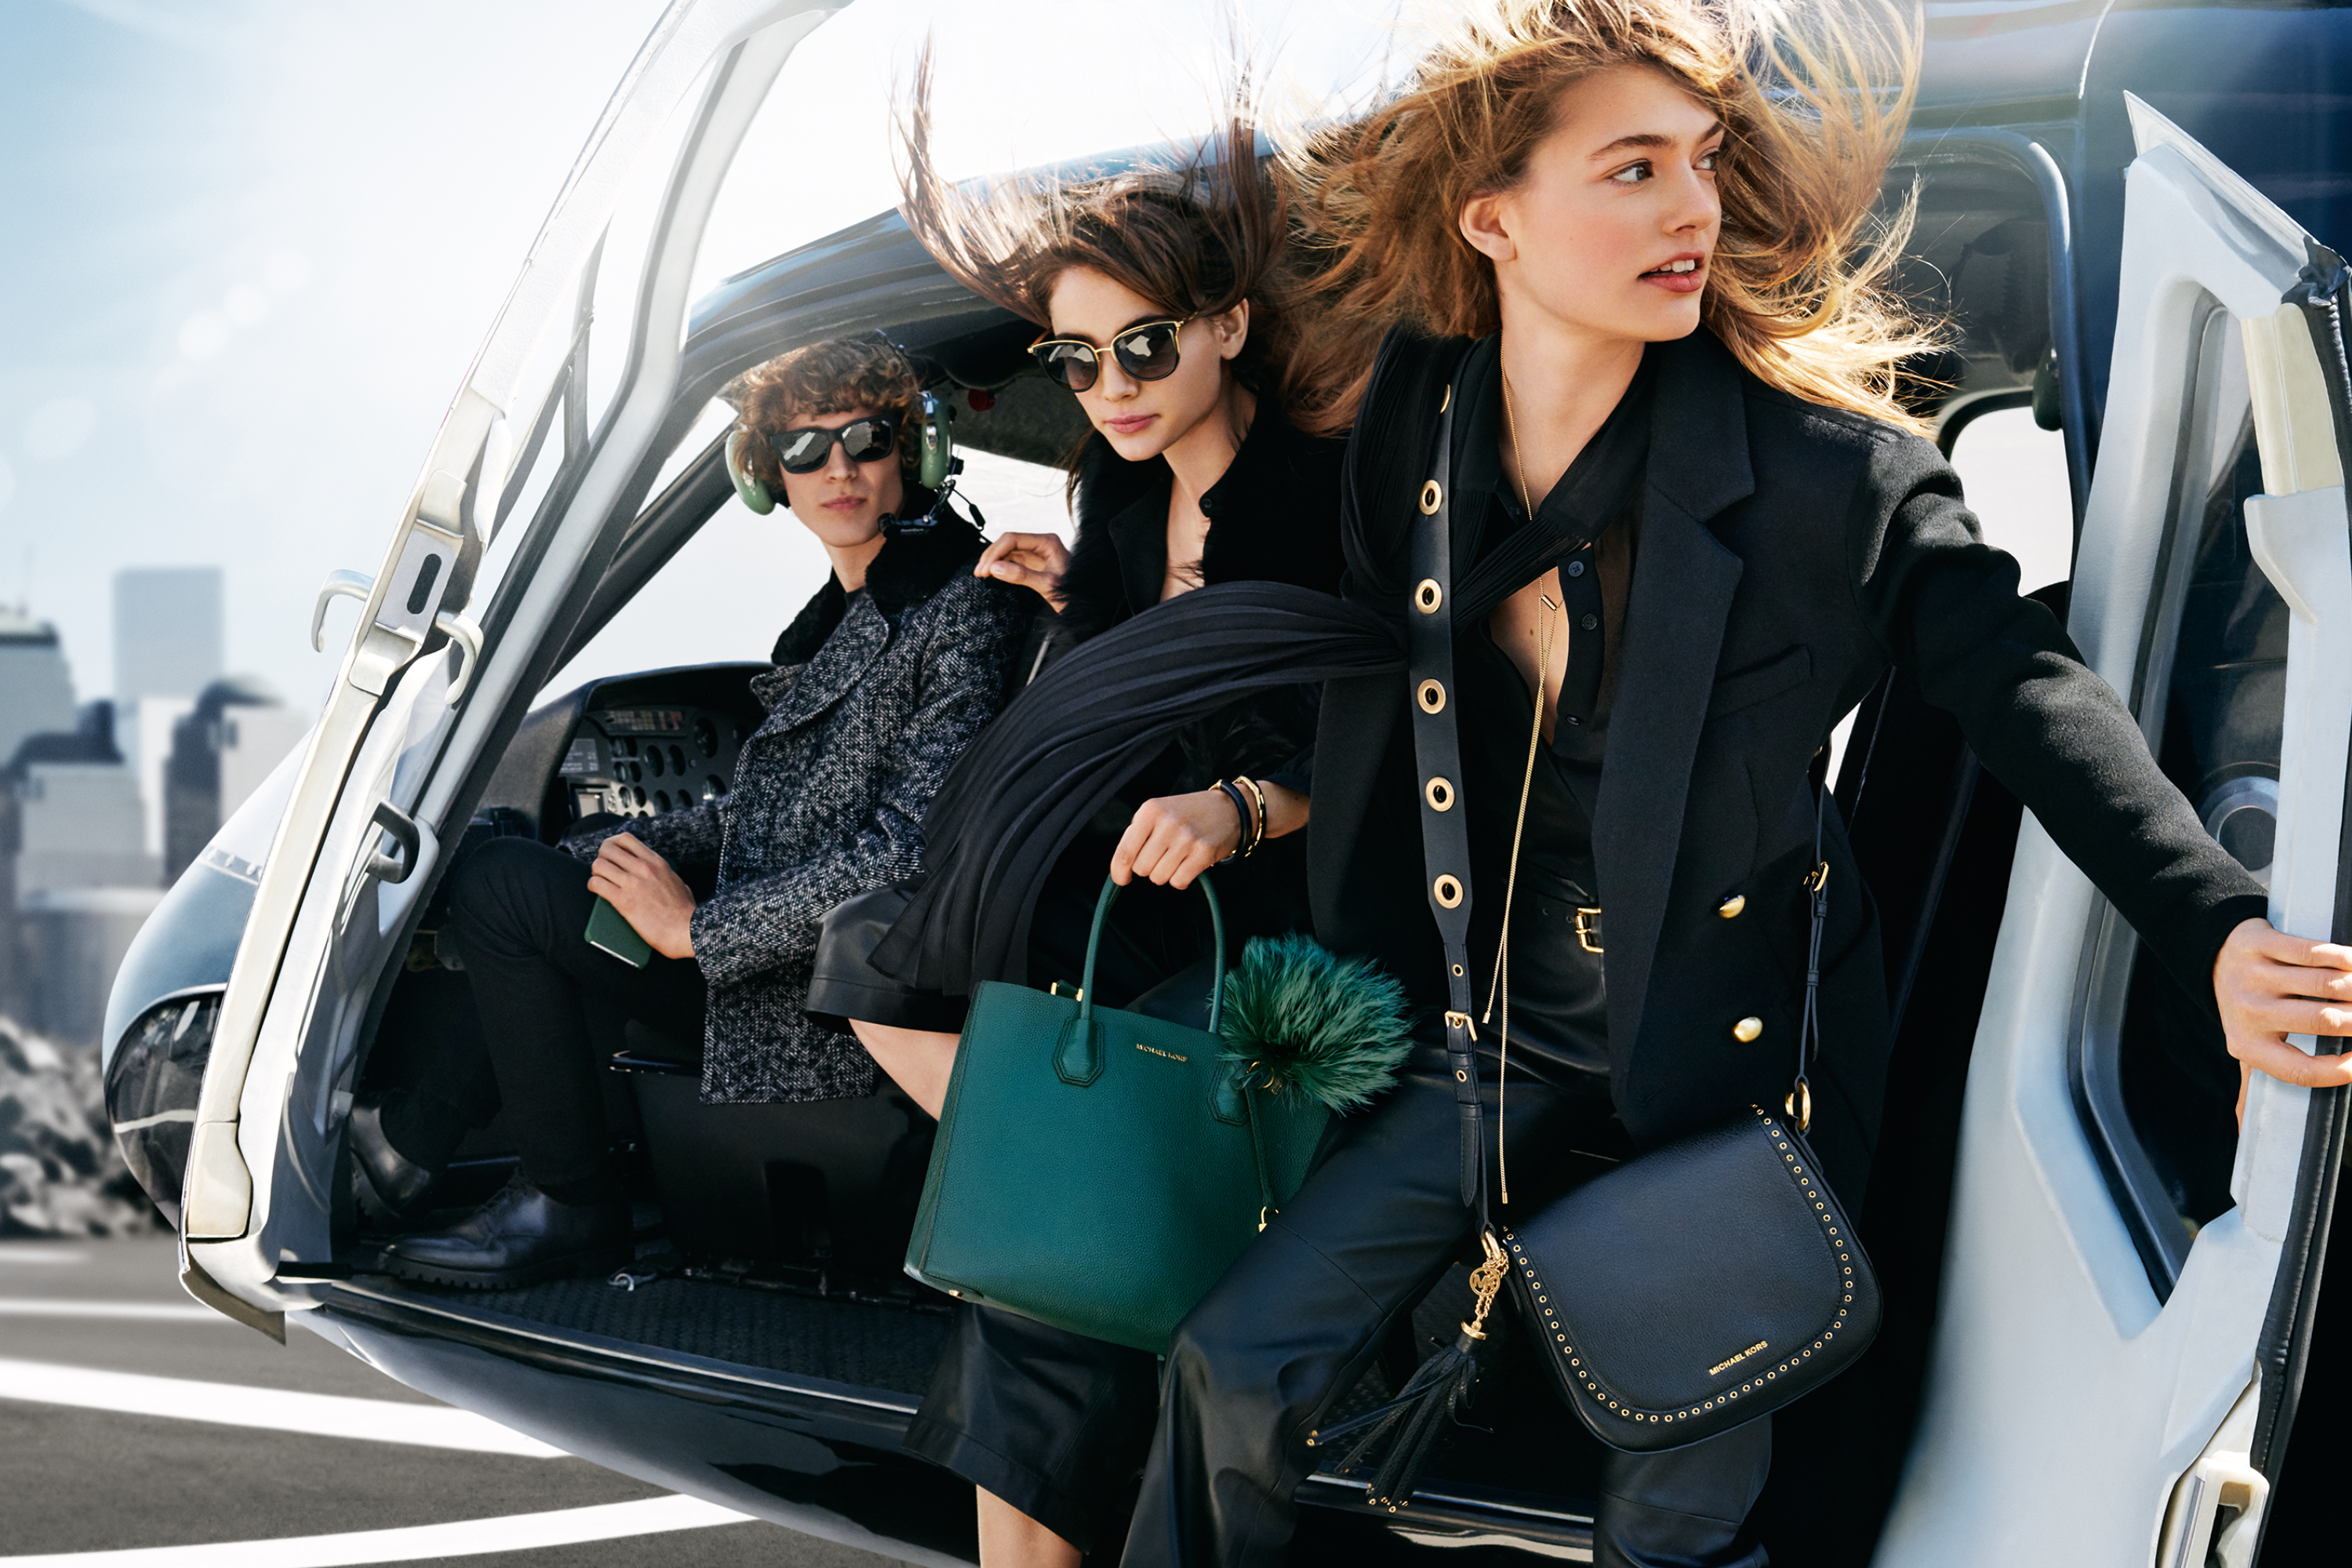 Michael Kors Unveils Fall 2016 Ad Campaigns - Daily Front Row c95b96efd65f5